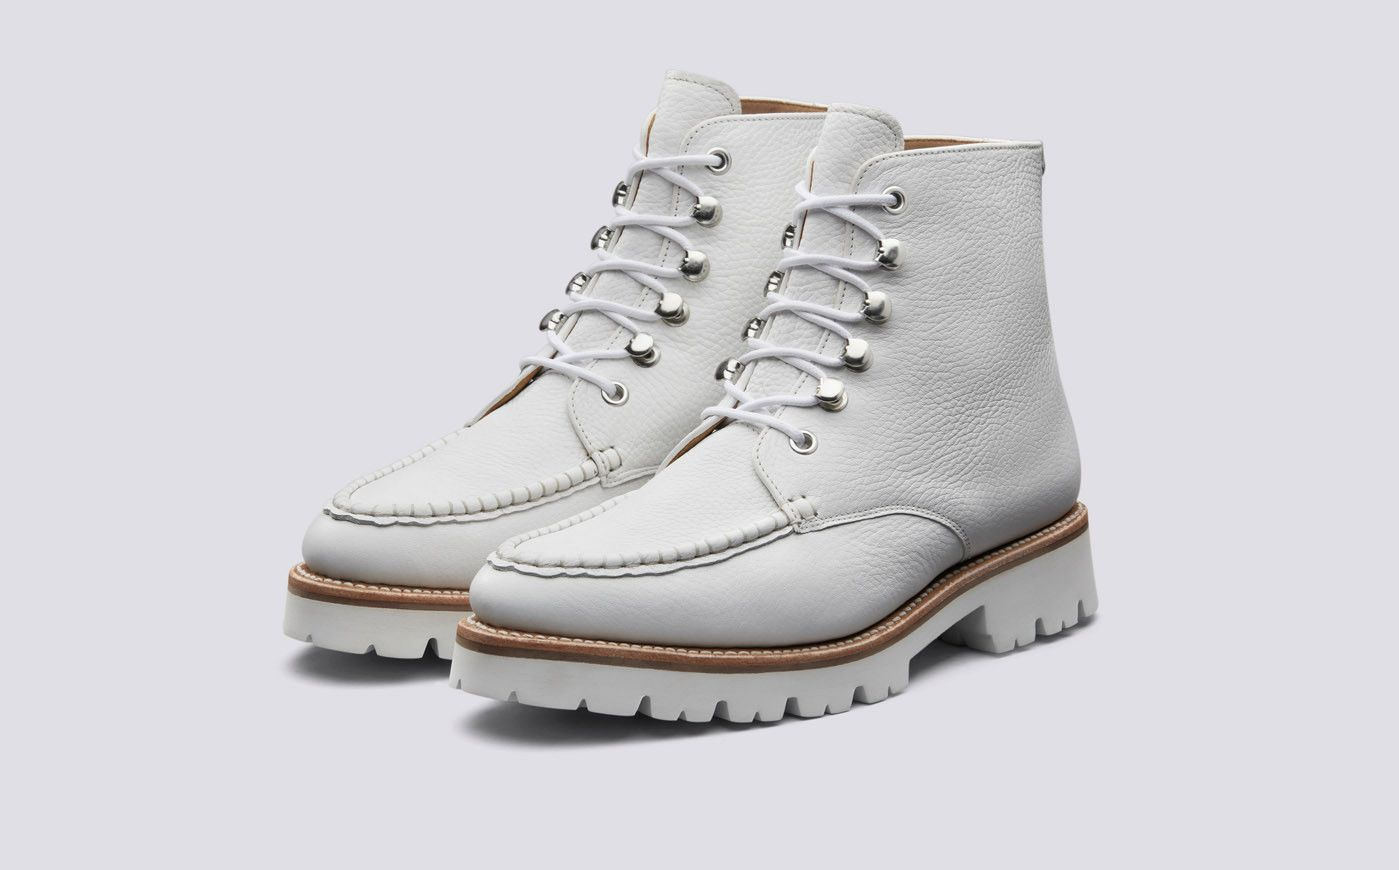 Geraldine | White Boots for Women on Commando Sole | Grenson